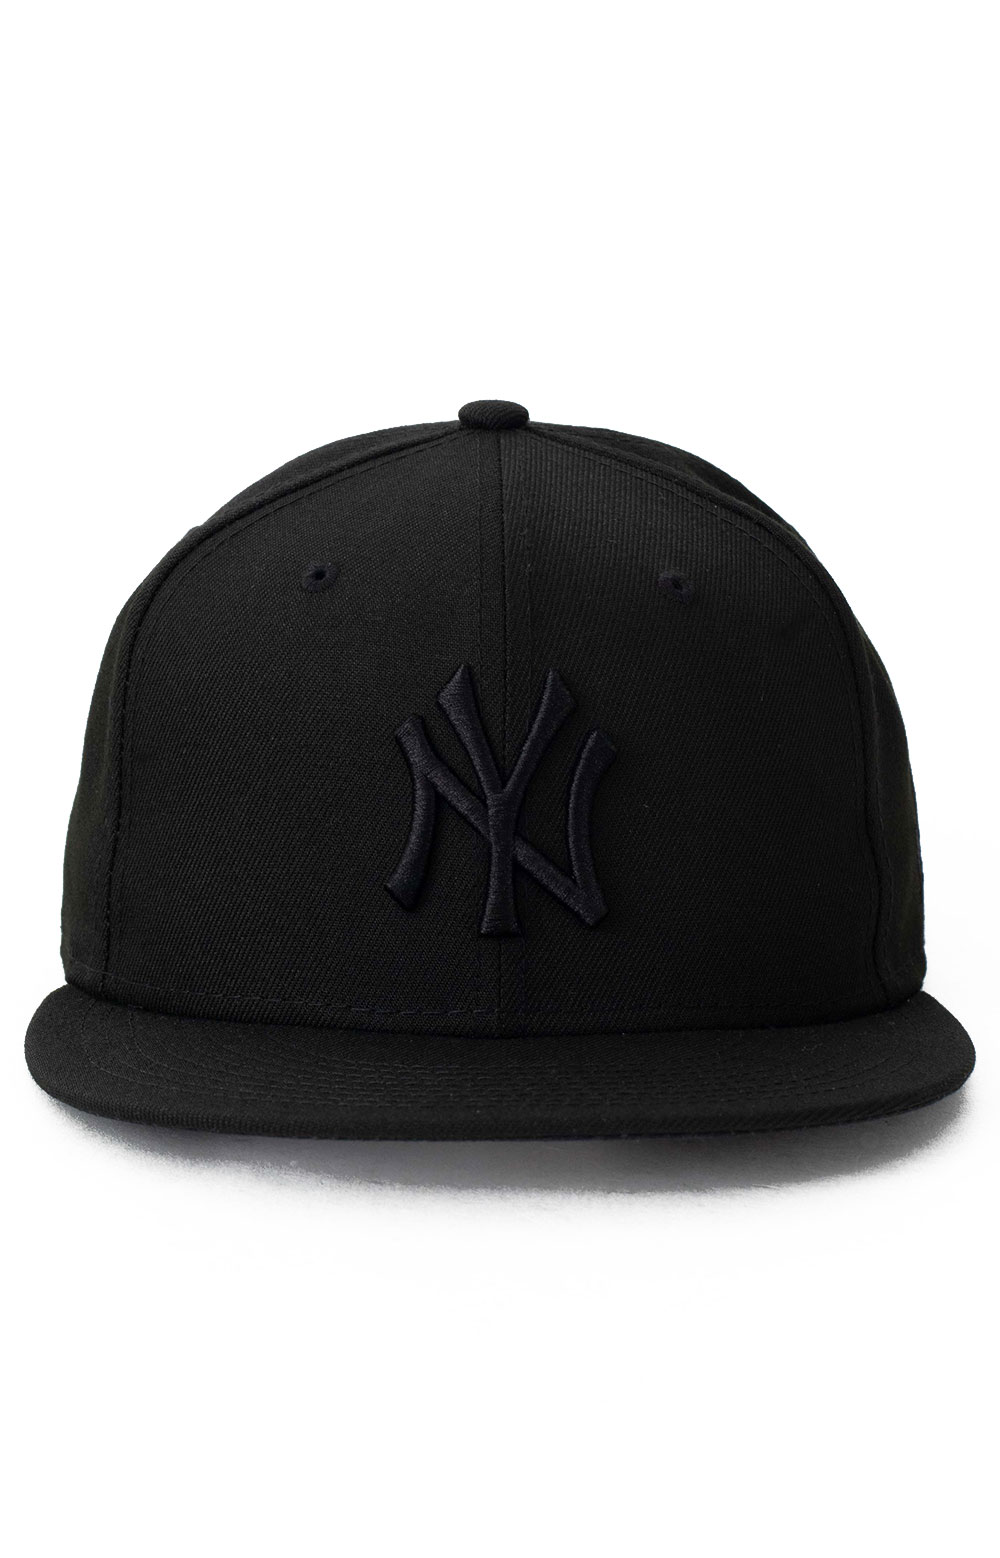 9Fifty Color Pack Snap-Back Hat - NY Yankees Black  2